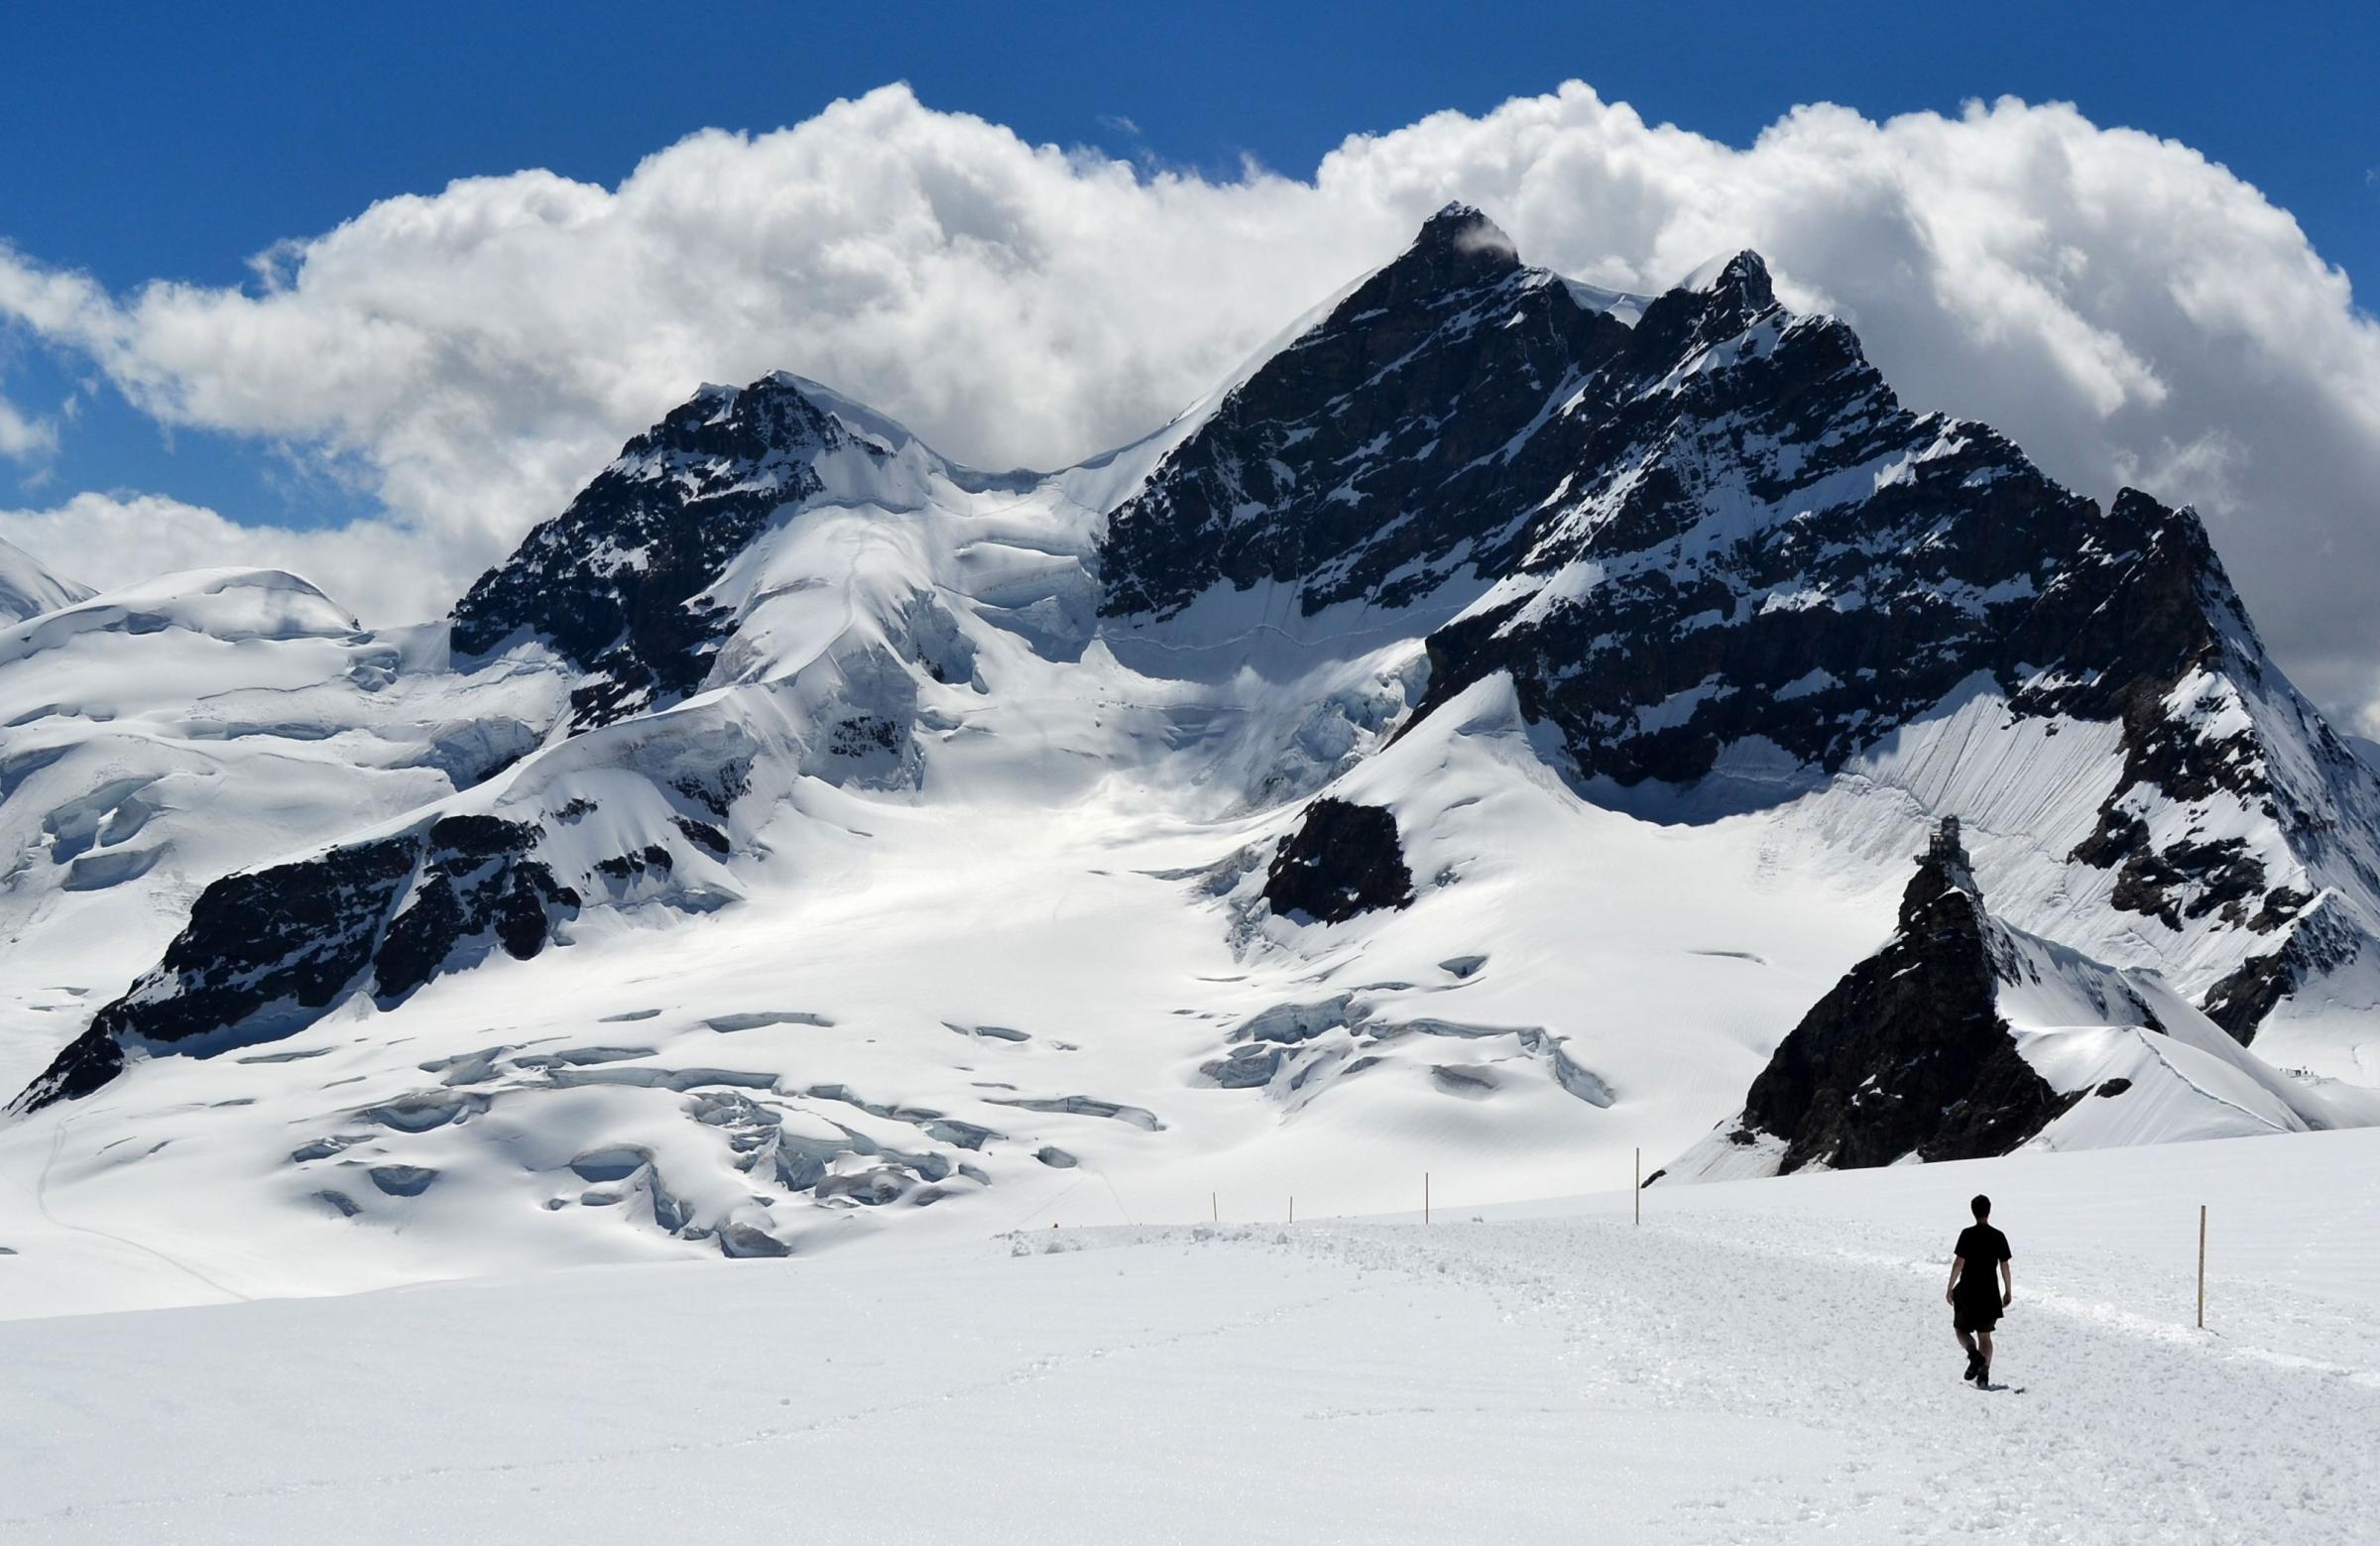 Hot-footing it in the breathtaking mountains of the Jungfrau region in Switzerland